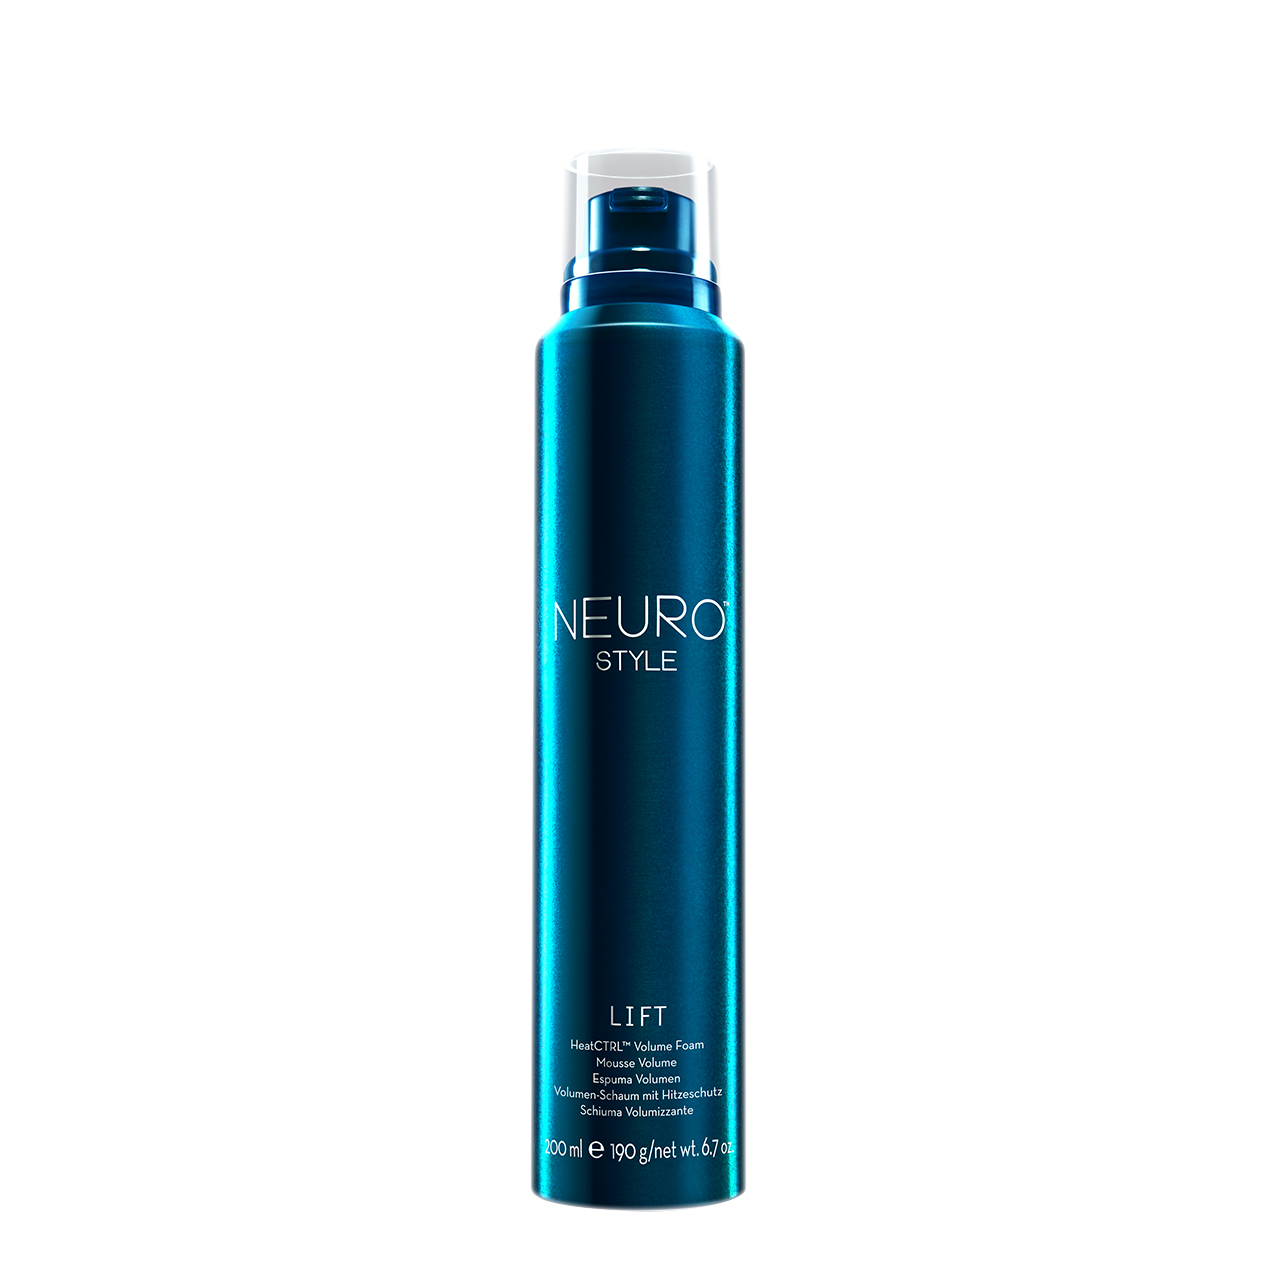 Pena Neuro Lift (200 ml) | Paul Mitchell